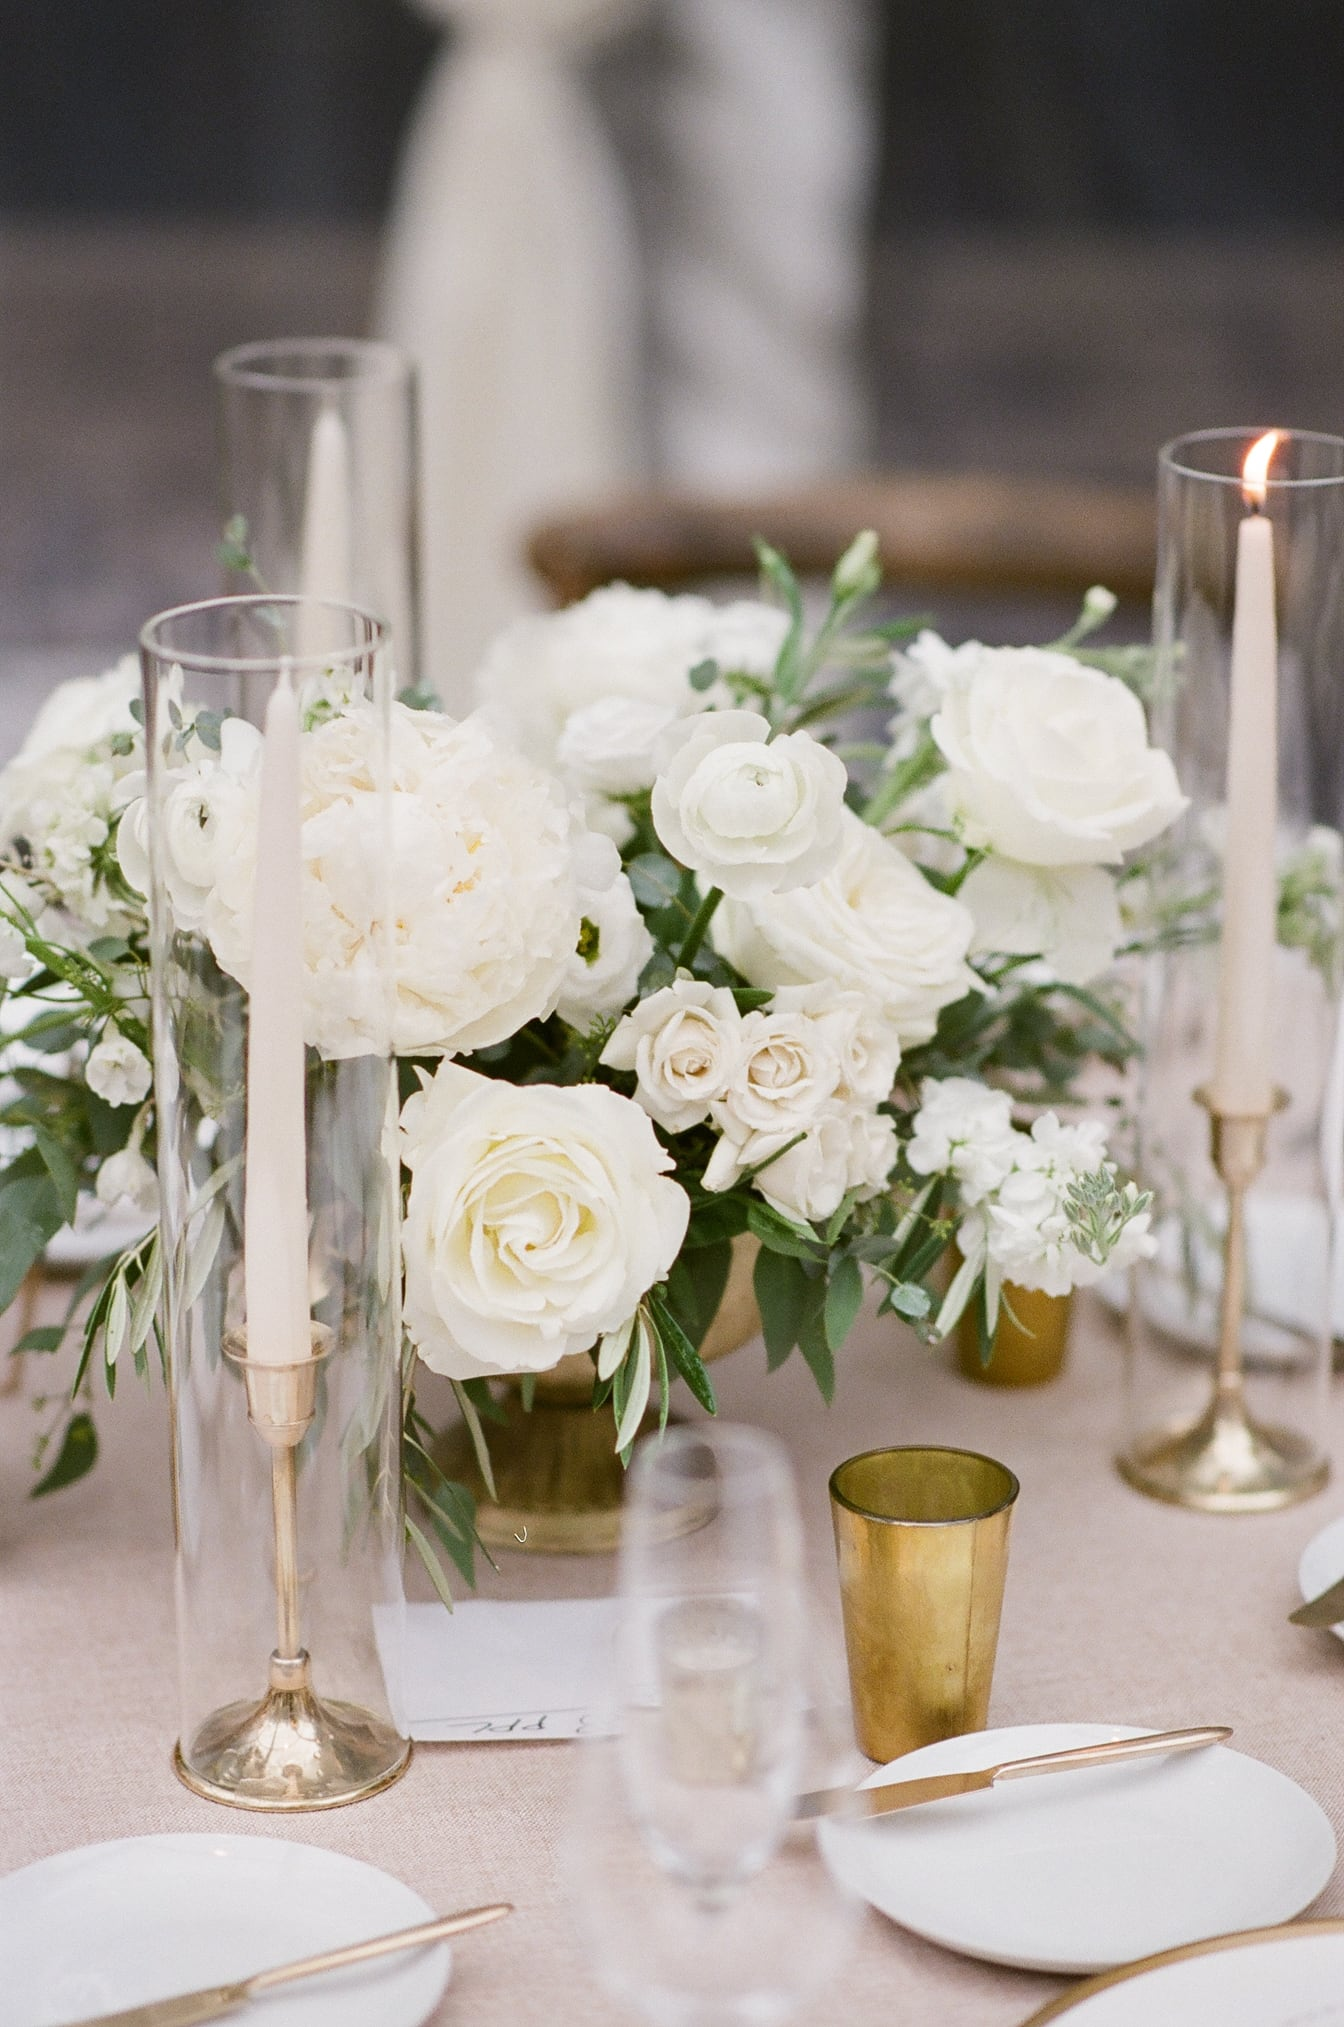 Floral centerpiece in whites and greens